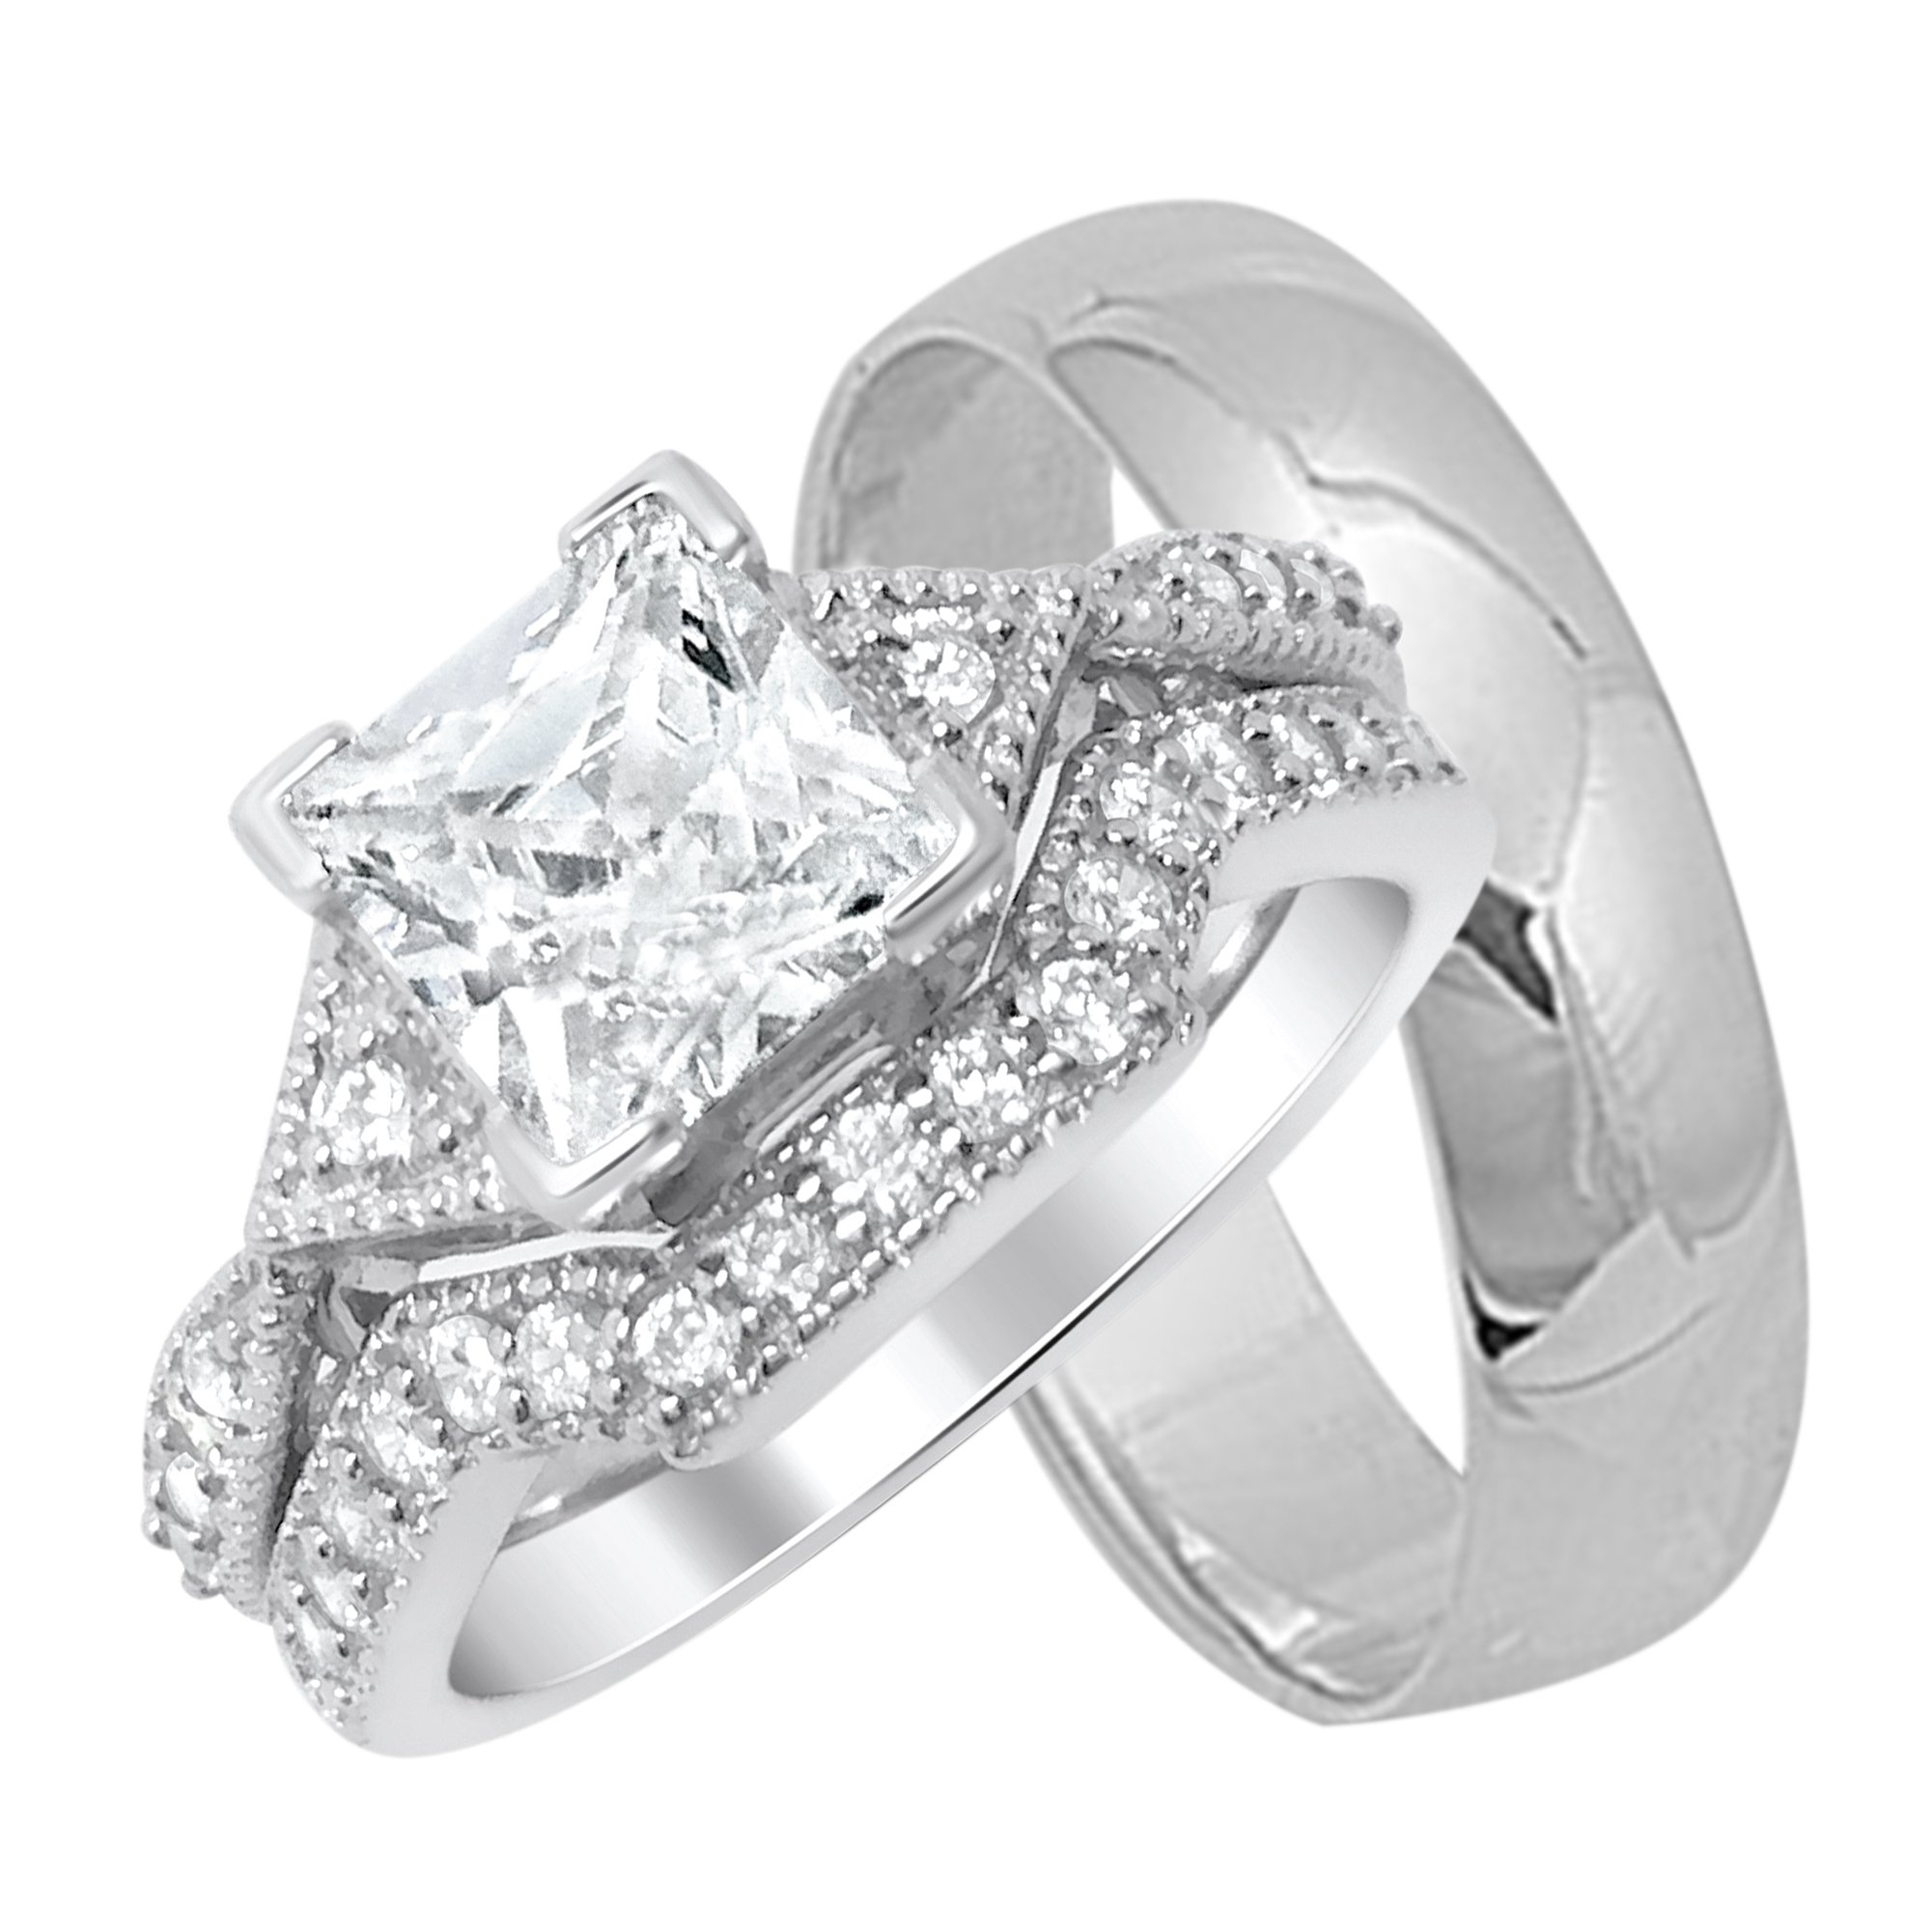 His and Hers Silver Wedding Rings Set Matching Bands For Him Her (9/9)